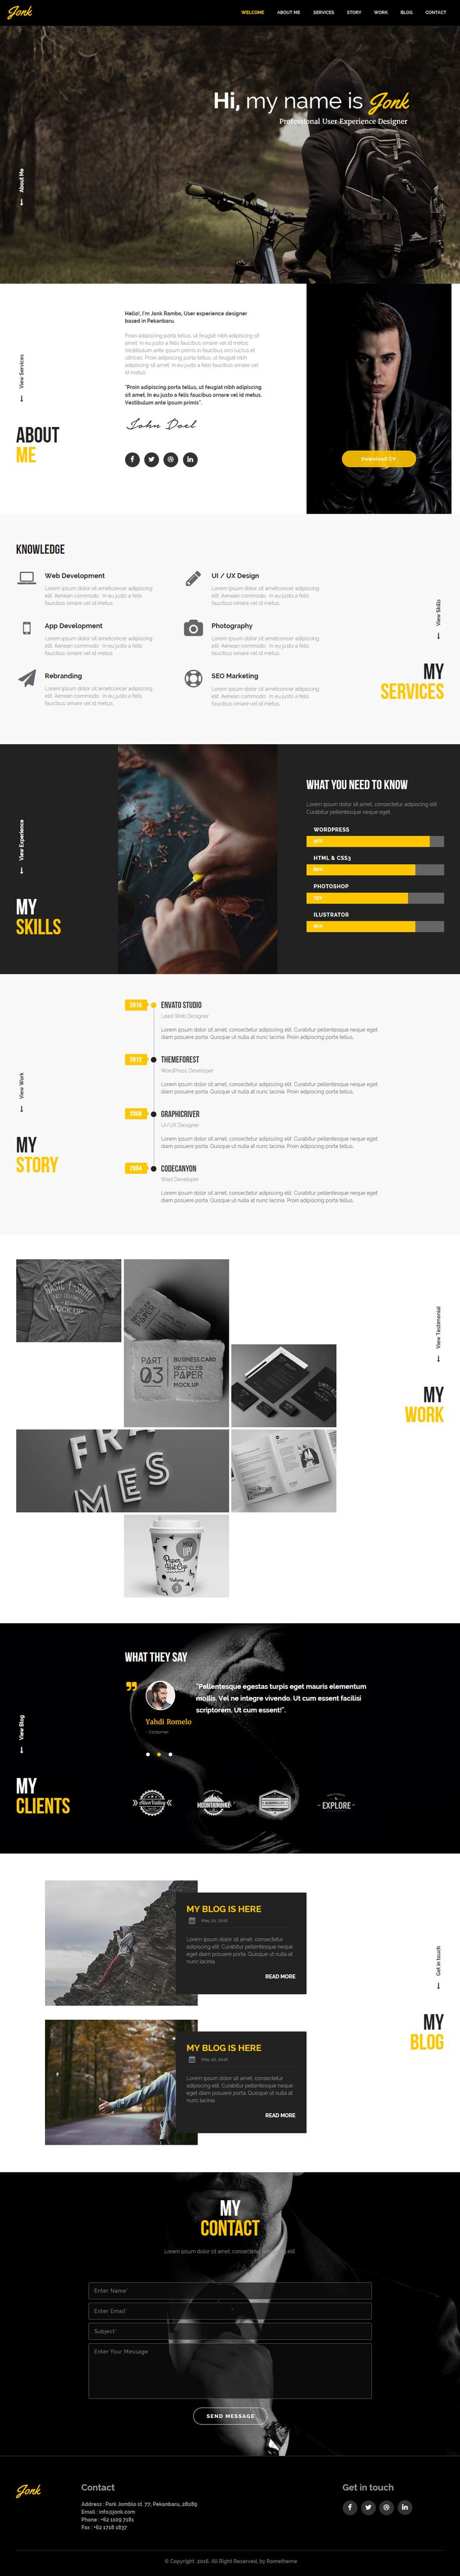 jonk is premium full responsive muse resume template one page font icons - Free Resume Fonts